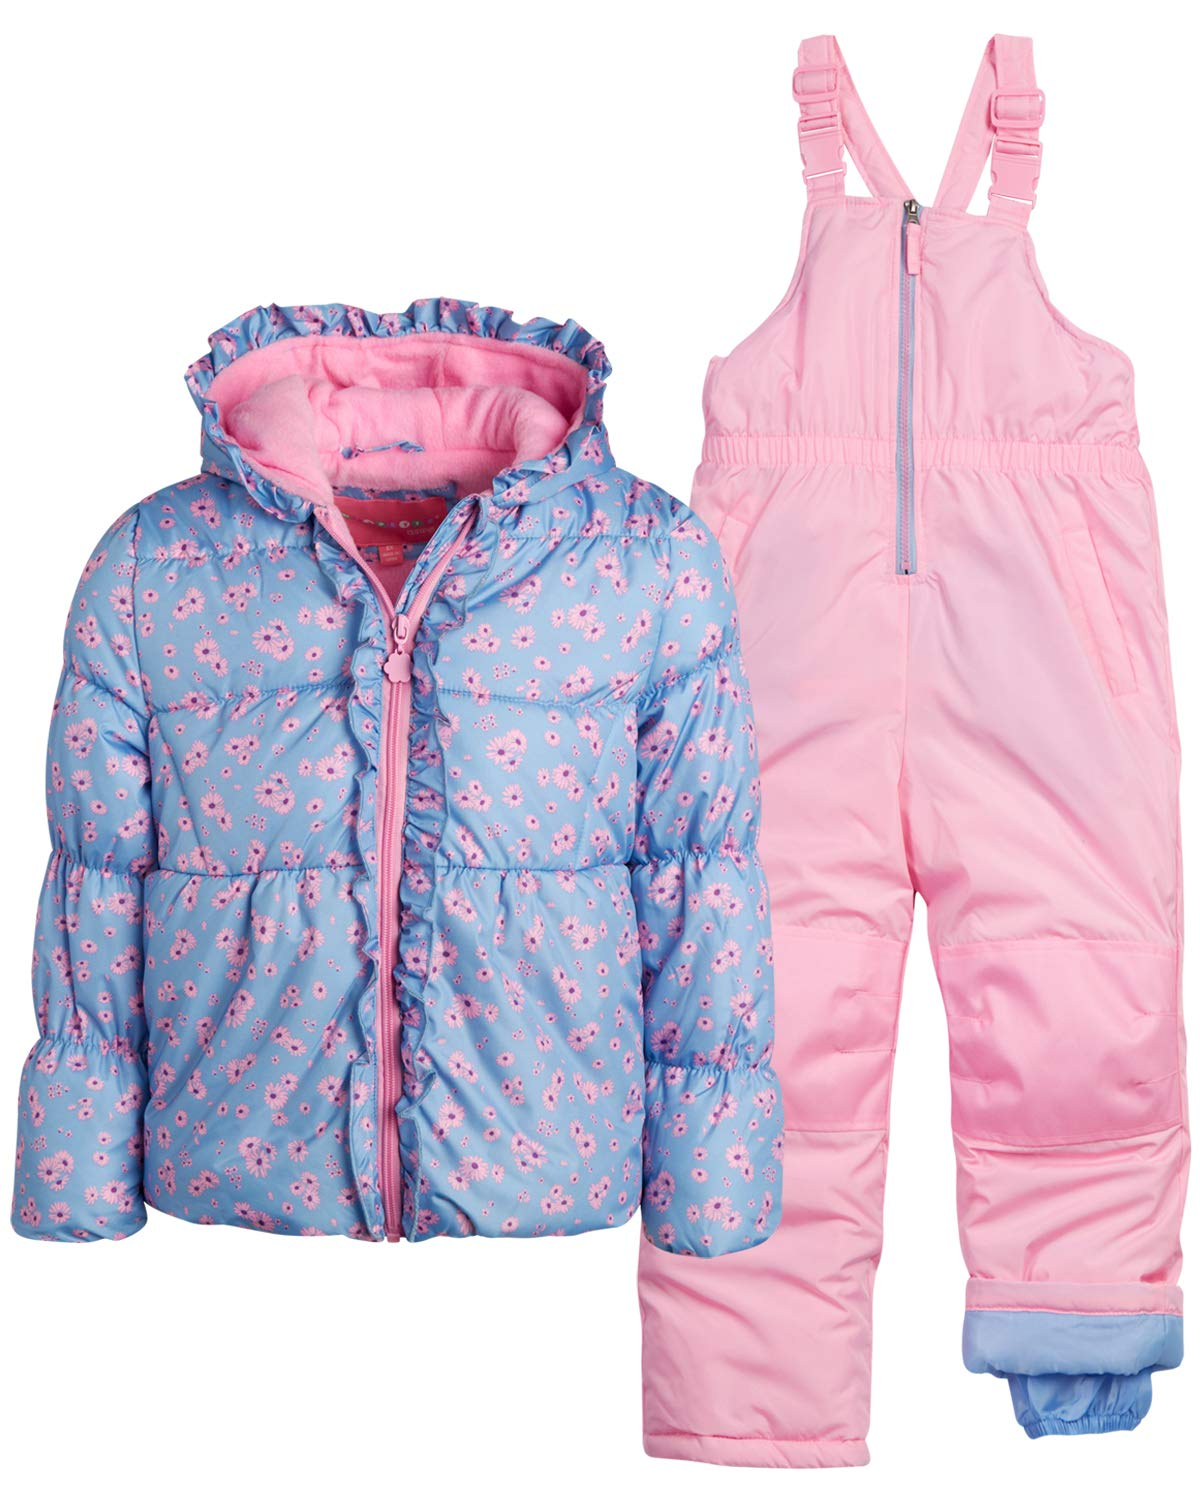 Wippette Little Girls' 2-Piece Heavyweight Snowsuit with Puffer Jacket and Snow Bib Pants, Size 5/6, Dusty Blue' by Wippette